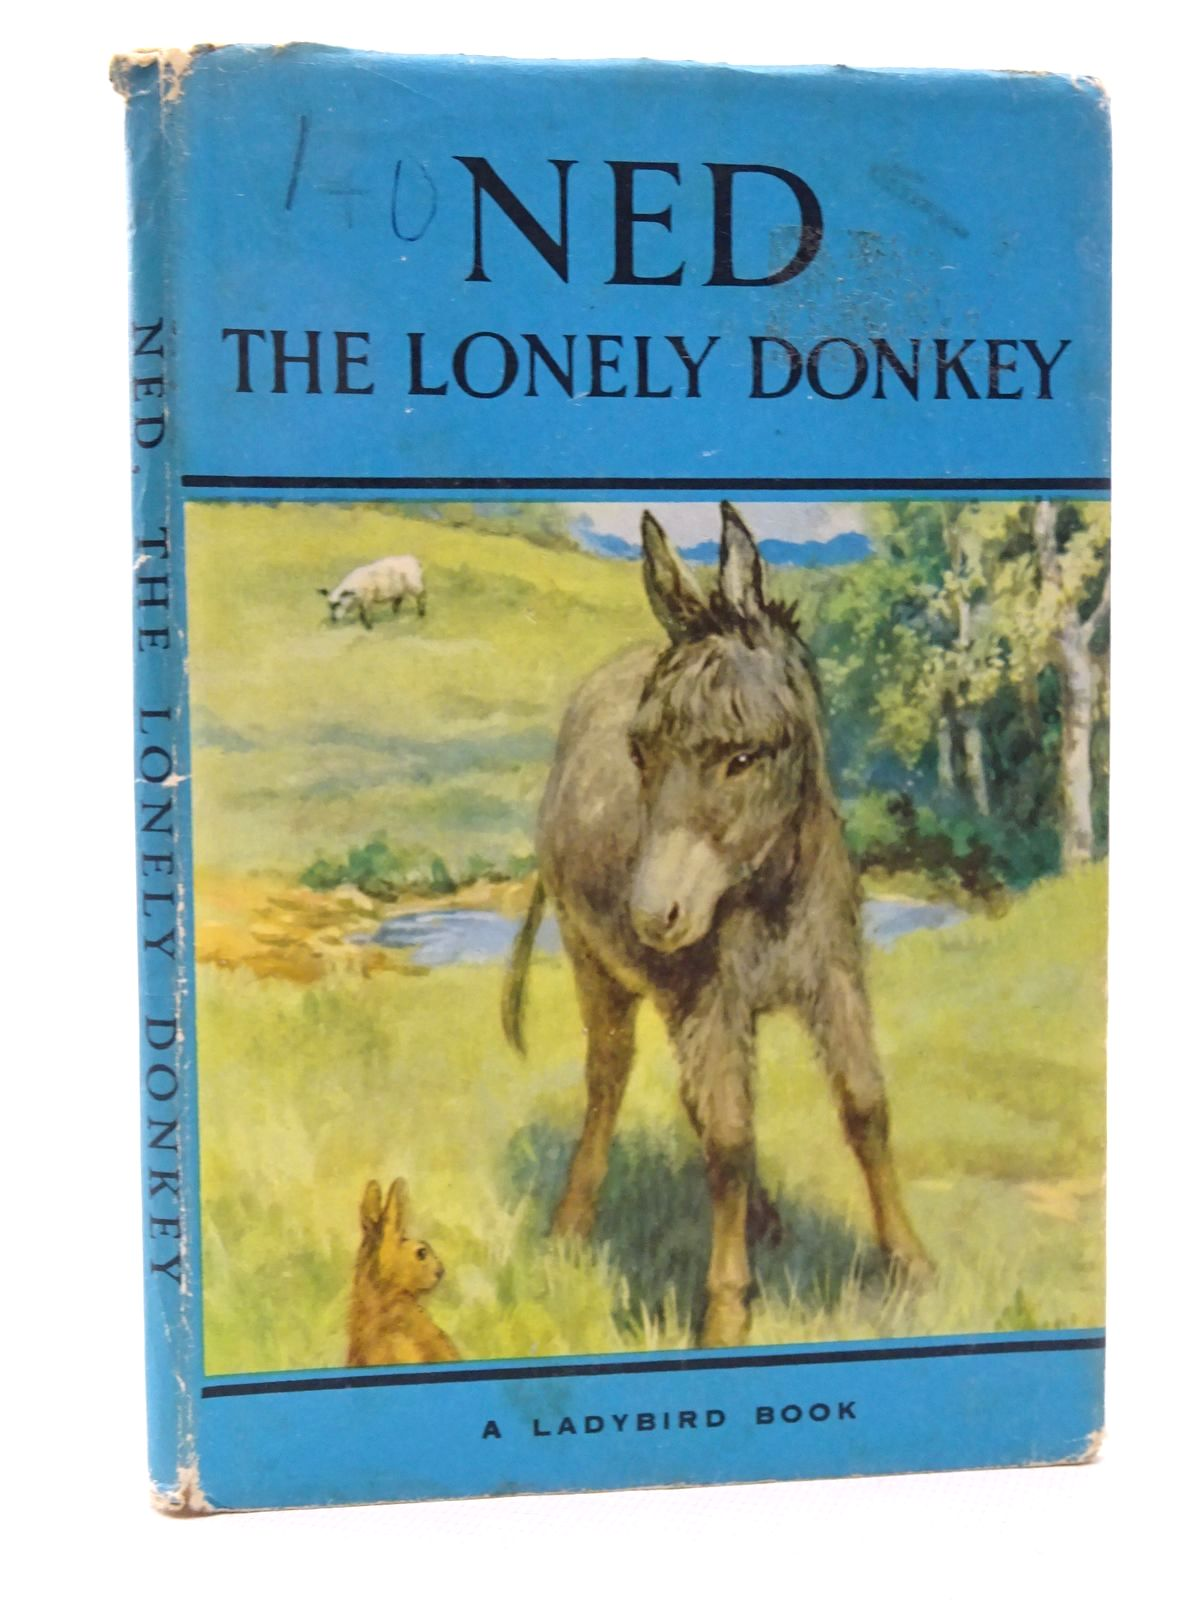 Photo of NED THE LONELY DONKEY written by Barr, Noel illustrated by Hickling, P.B. published by Wills & Hepworth Ltd. (STOCK CODE: 2124339)  for sale by Stella & Rose's Books